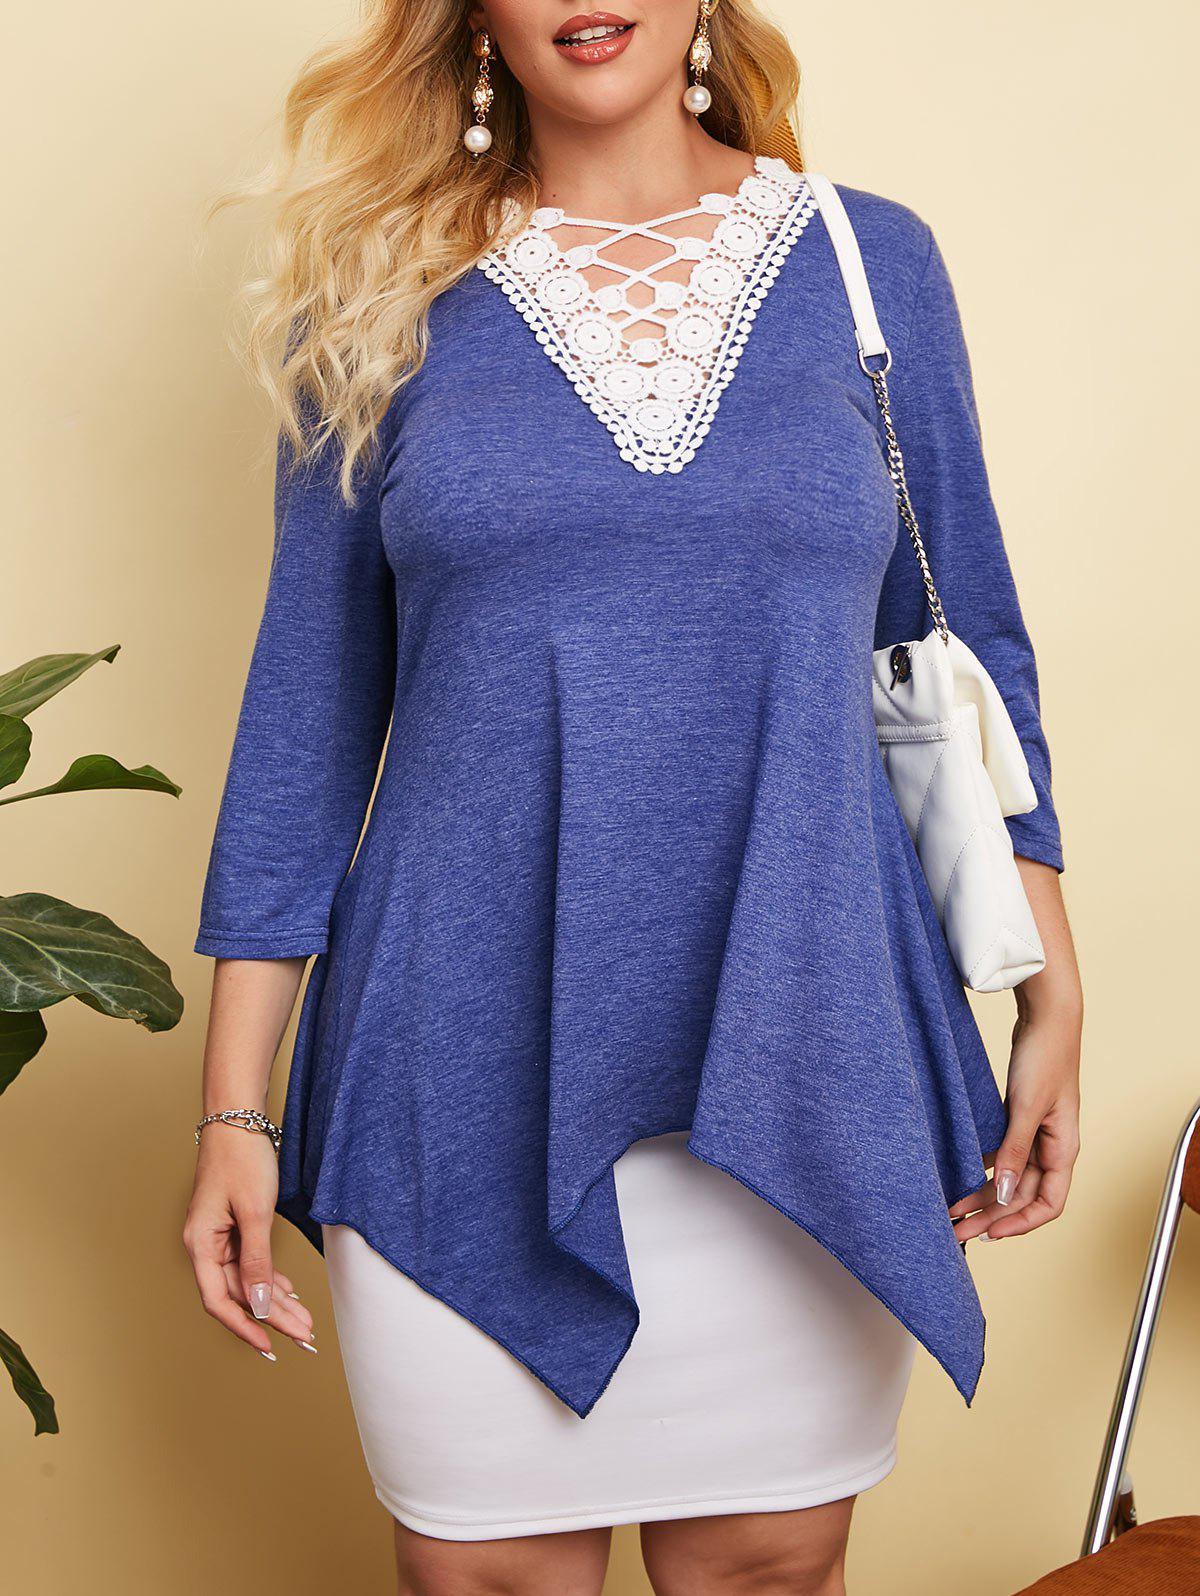 Hot Heathered Crochet Lace Panel Plus Size Top